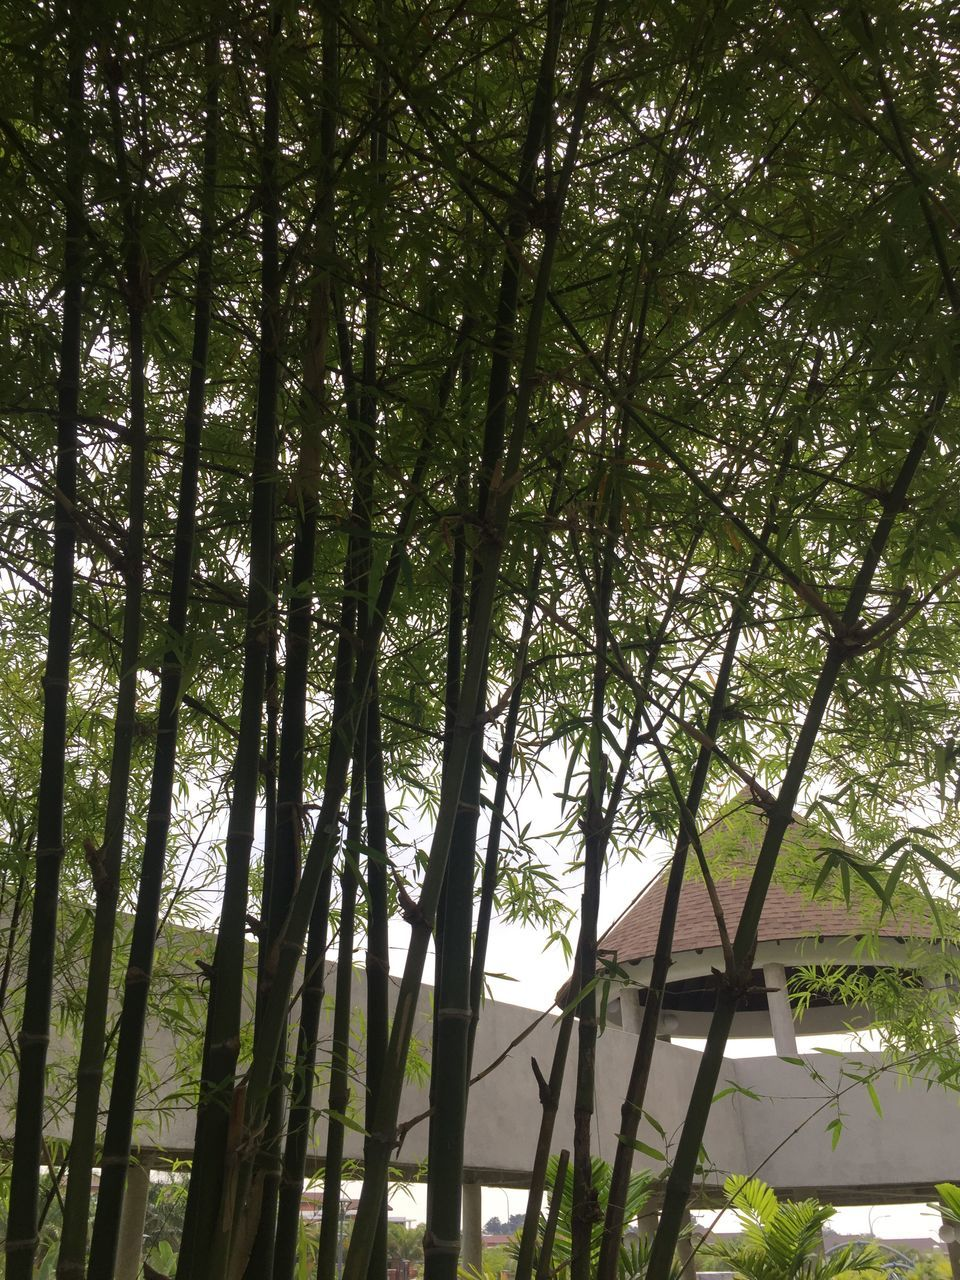 tree, nature, growth, tranquility, bamboo grove, bamboo - plant, low angle view, tranquil scene, forest, day, beauty in nature, no people, outdoors, tree trunk, green color, scenics, sky